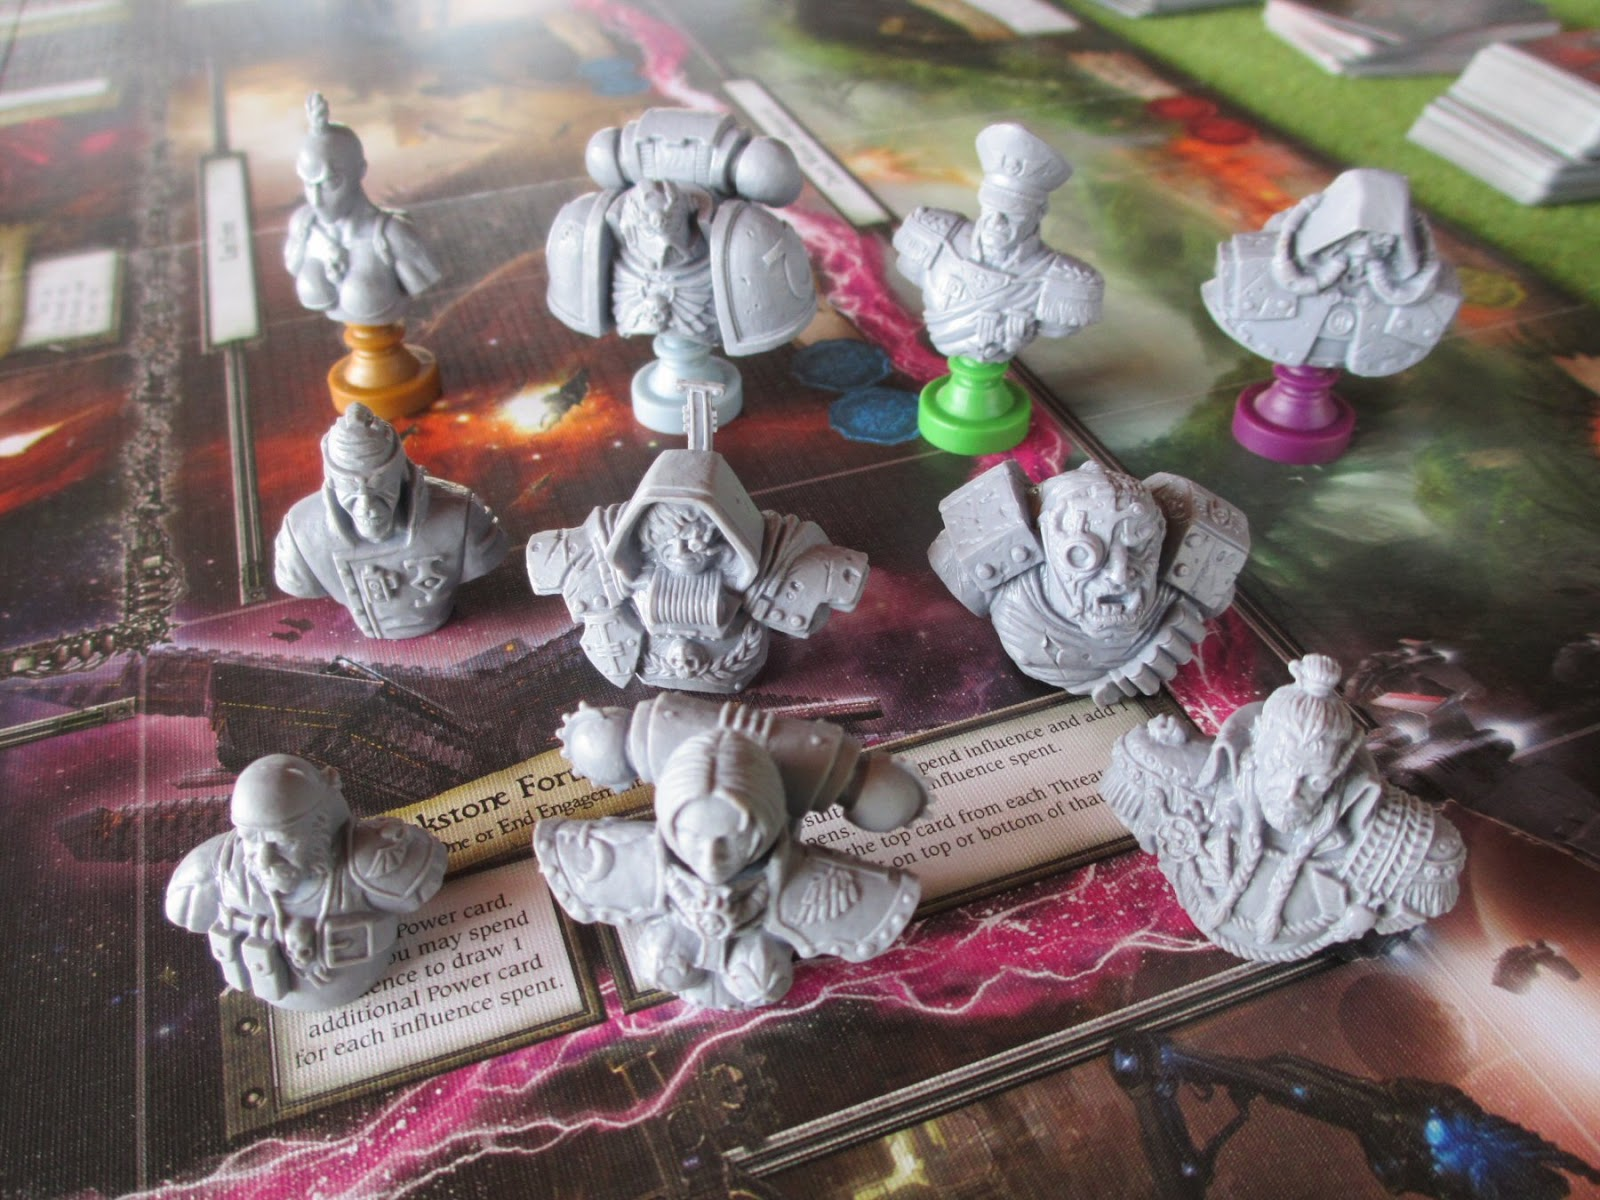 Atomic Warlords: Relic has arrived